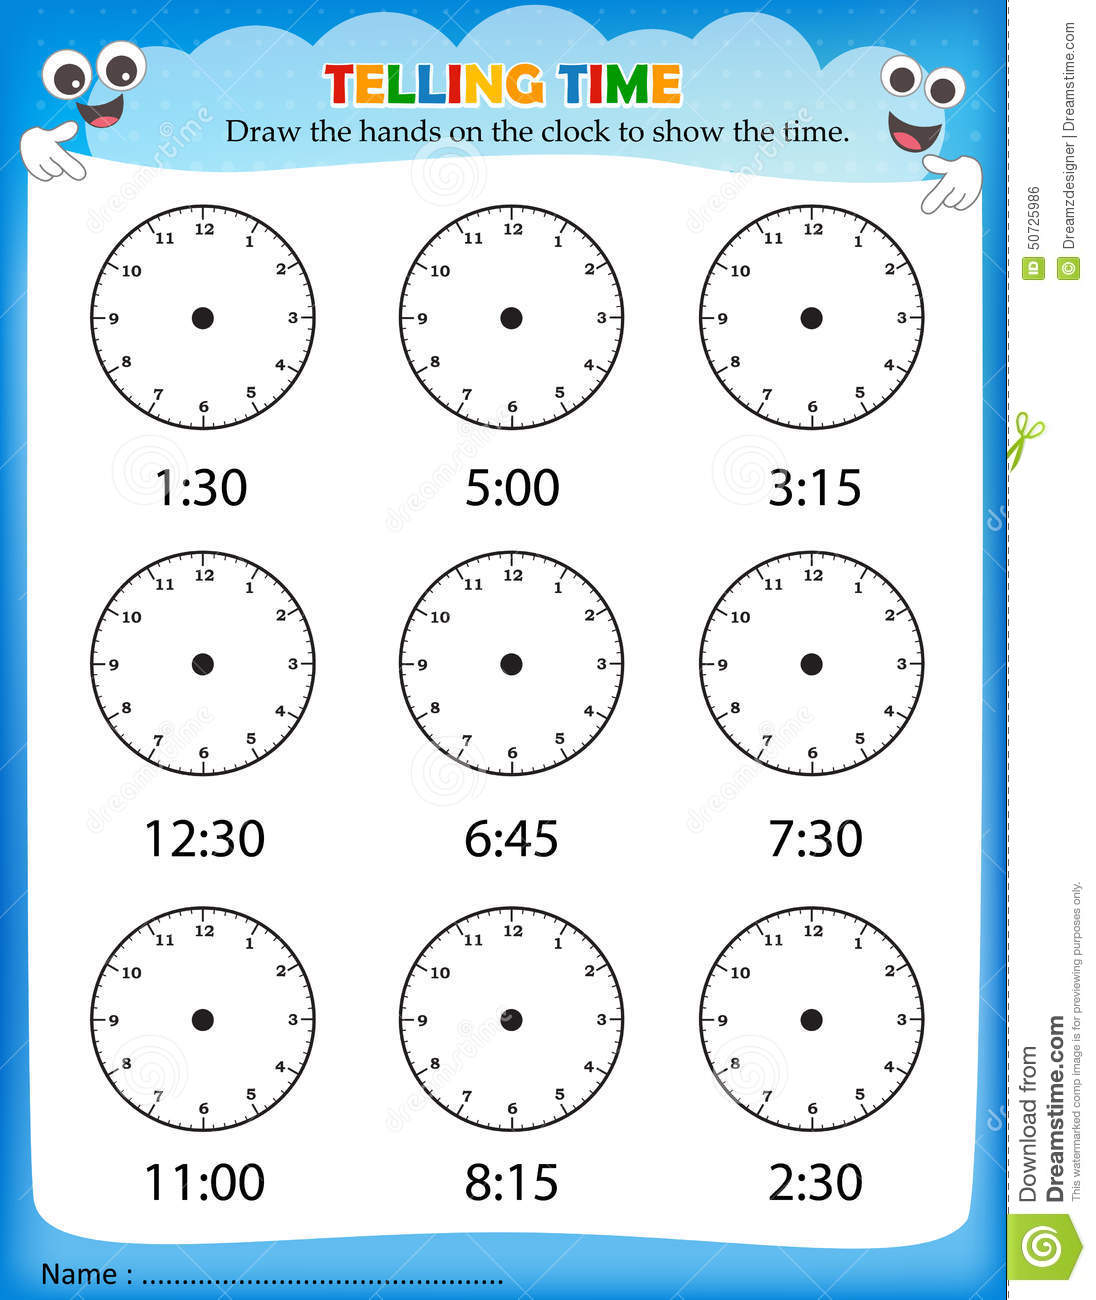 ... for pre school kids to identify the time. Clock faces without hands